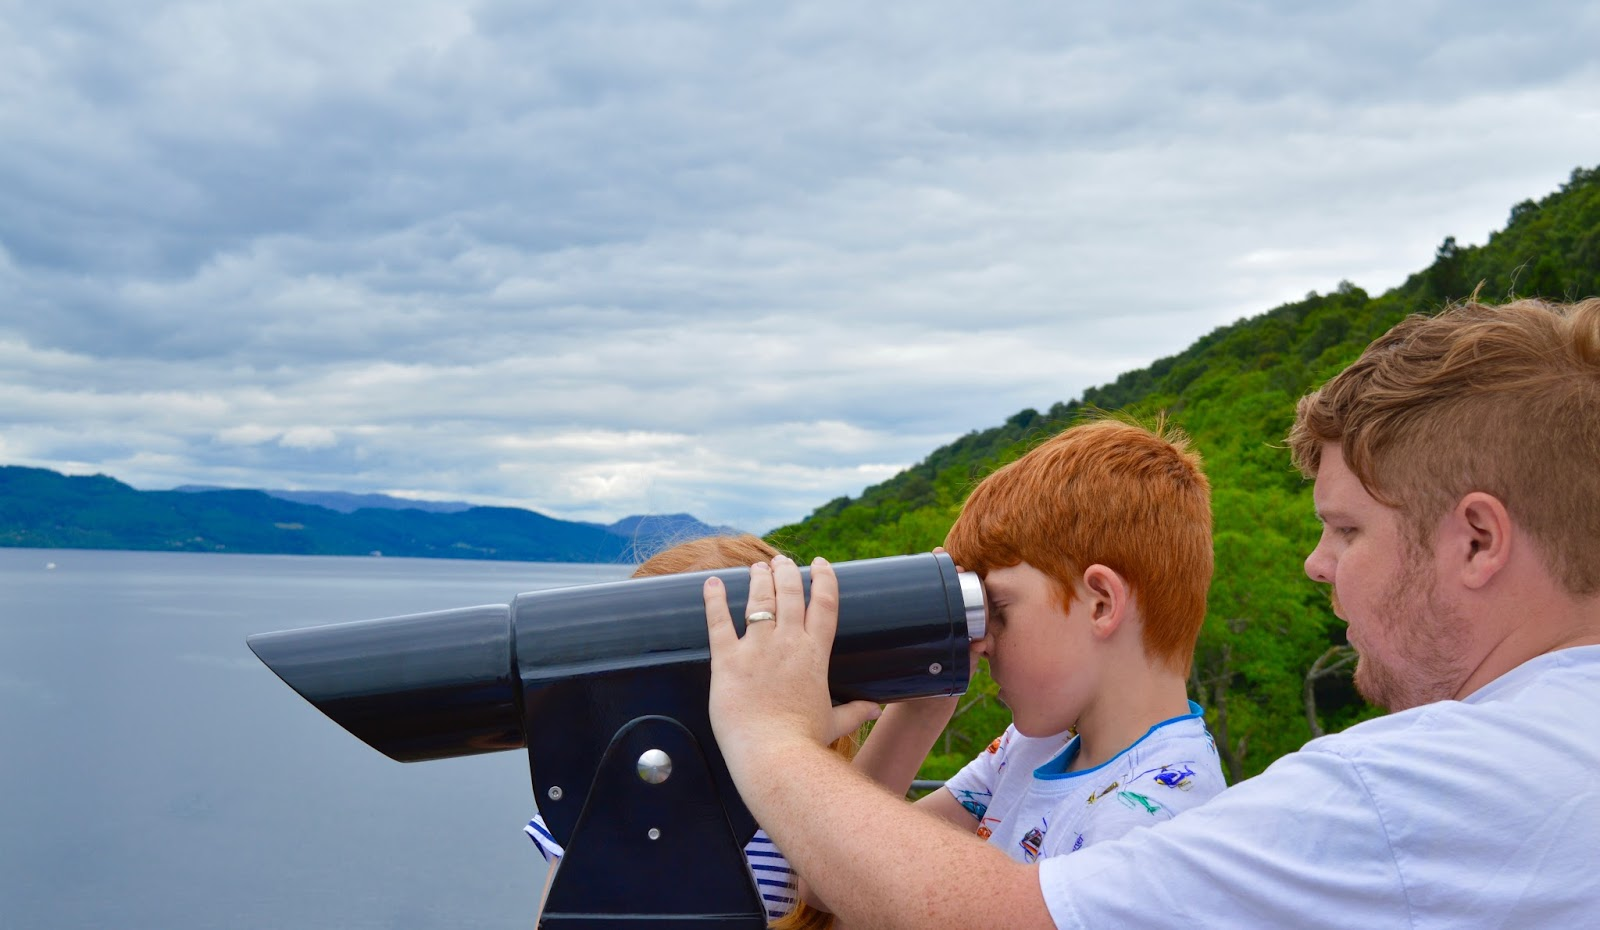 Loch Ness Centre & Exhibition Review with Kids - We spot the Loch Ness Monster!